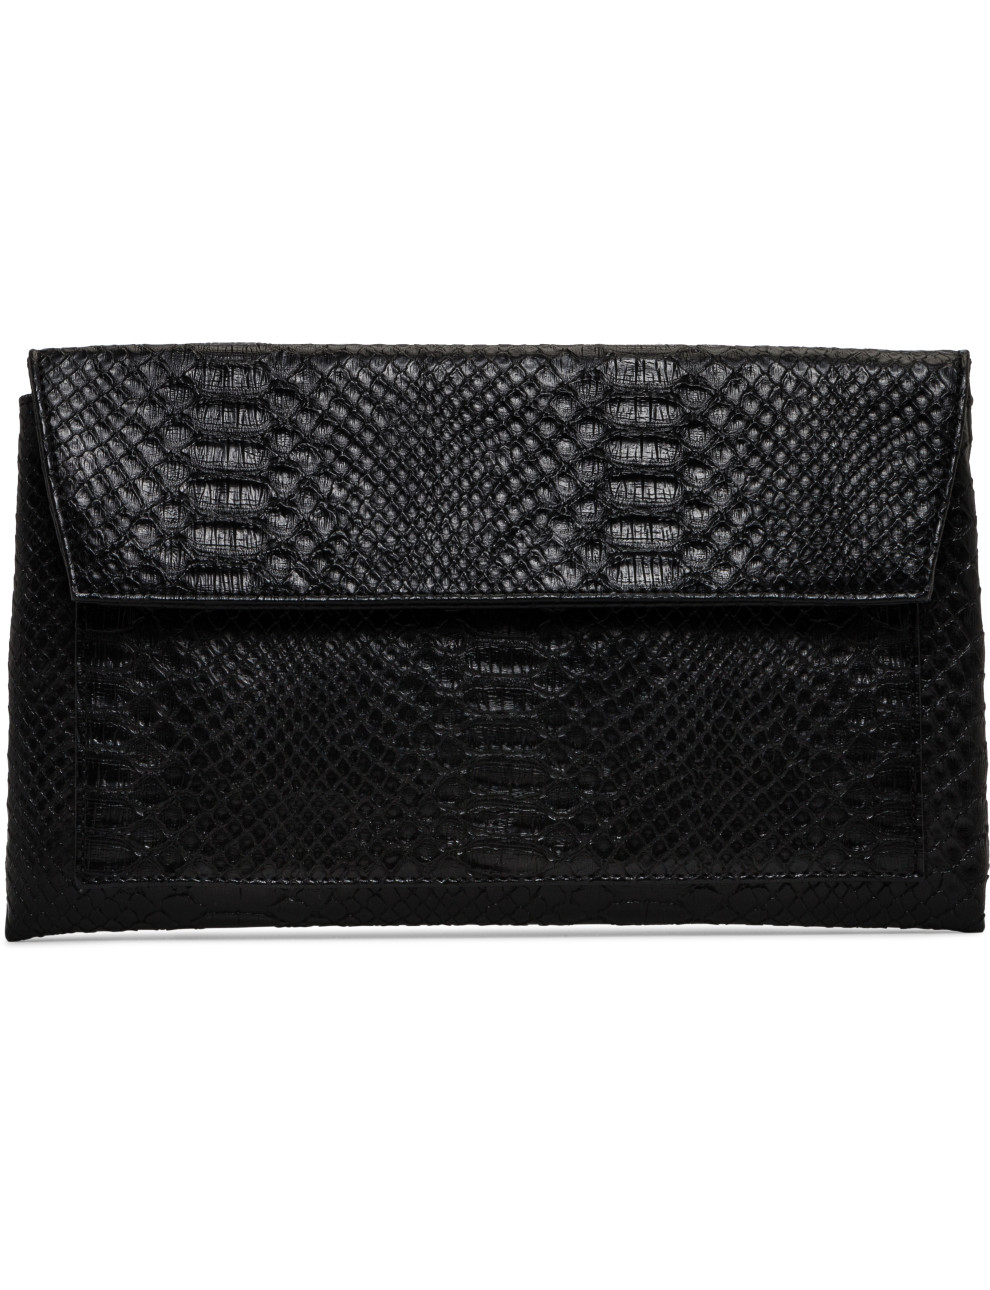 Clutches \u0026amp; Mini Bags - Designer Clutches | David Jones